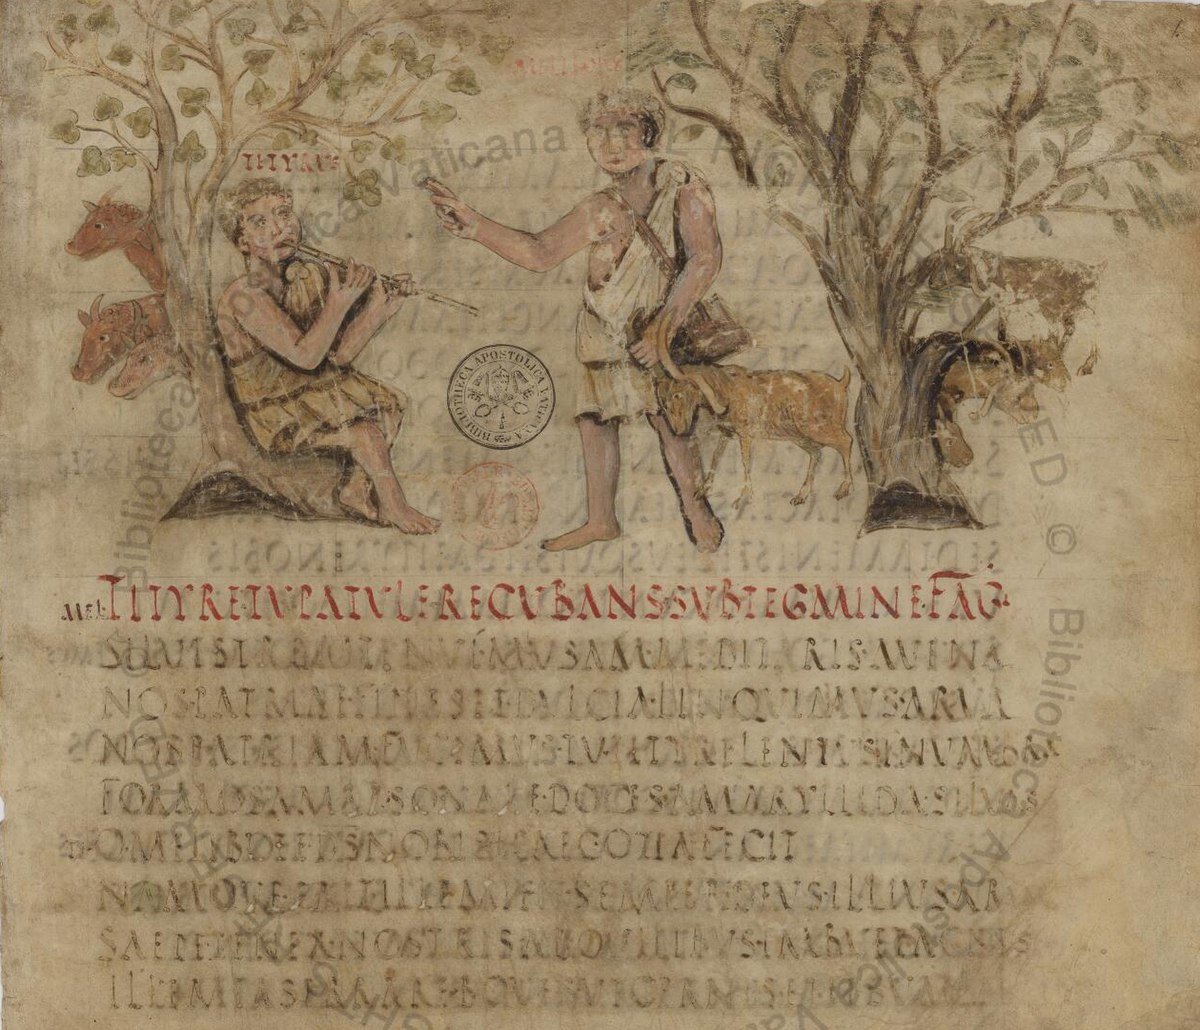 callimachus and virgil s eclogue 6 Callimachus and eclogue 6 virgil's eclogue 6, in which tityrus sings about two shepherds who capture silenus and make him sing, is not only a poem about silenus' mythical song.